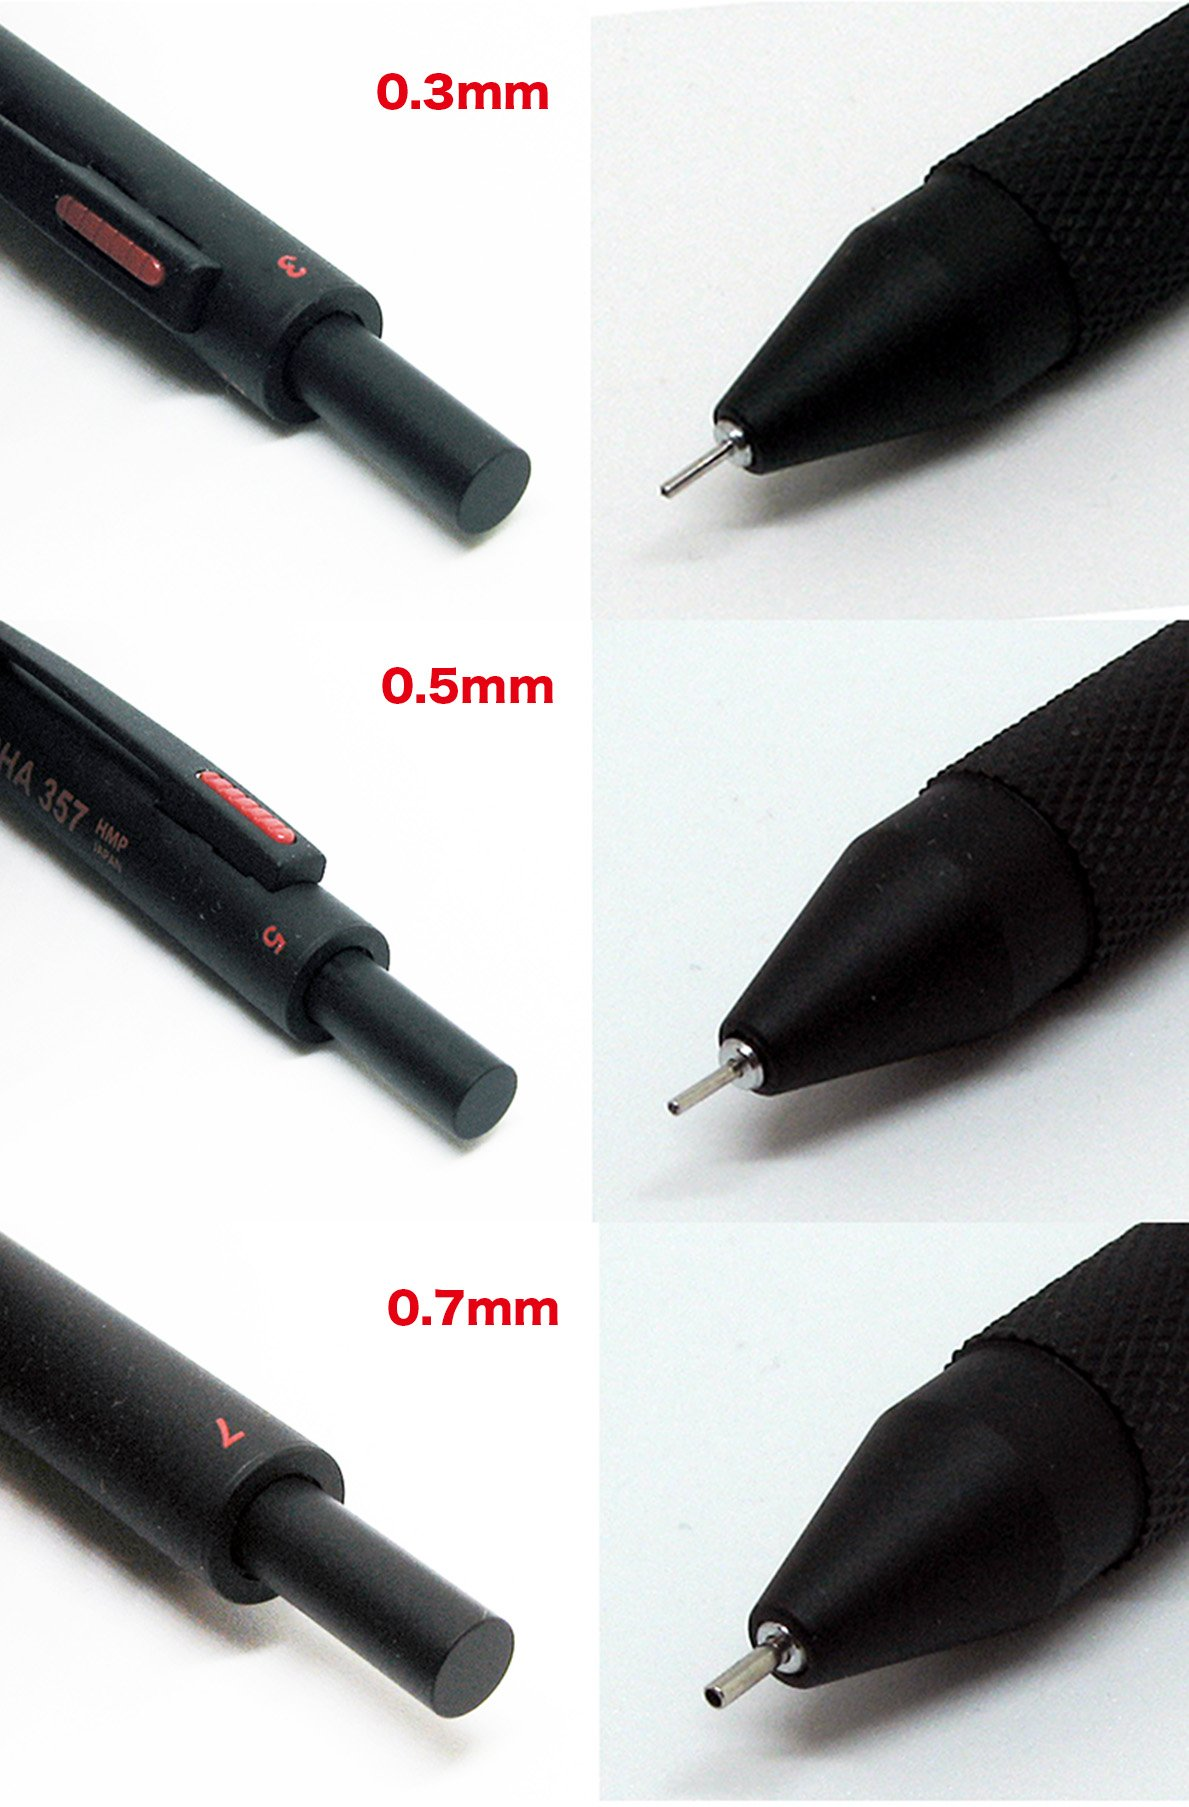 57 POWERS MECHA 357 Multi Mechanical Pencil 3in1 0.3mm 0.5mm 0.7mm Japan (BLACK) by HMP (Image #5)